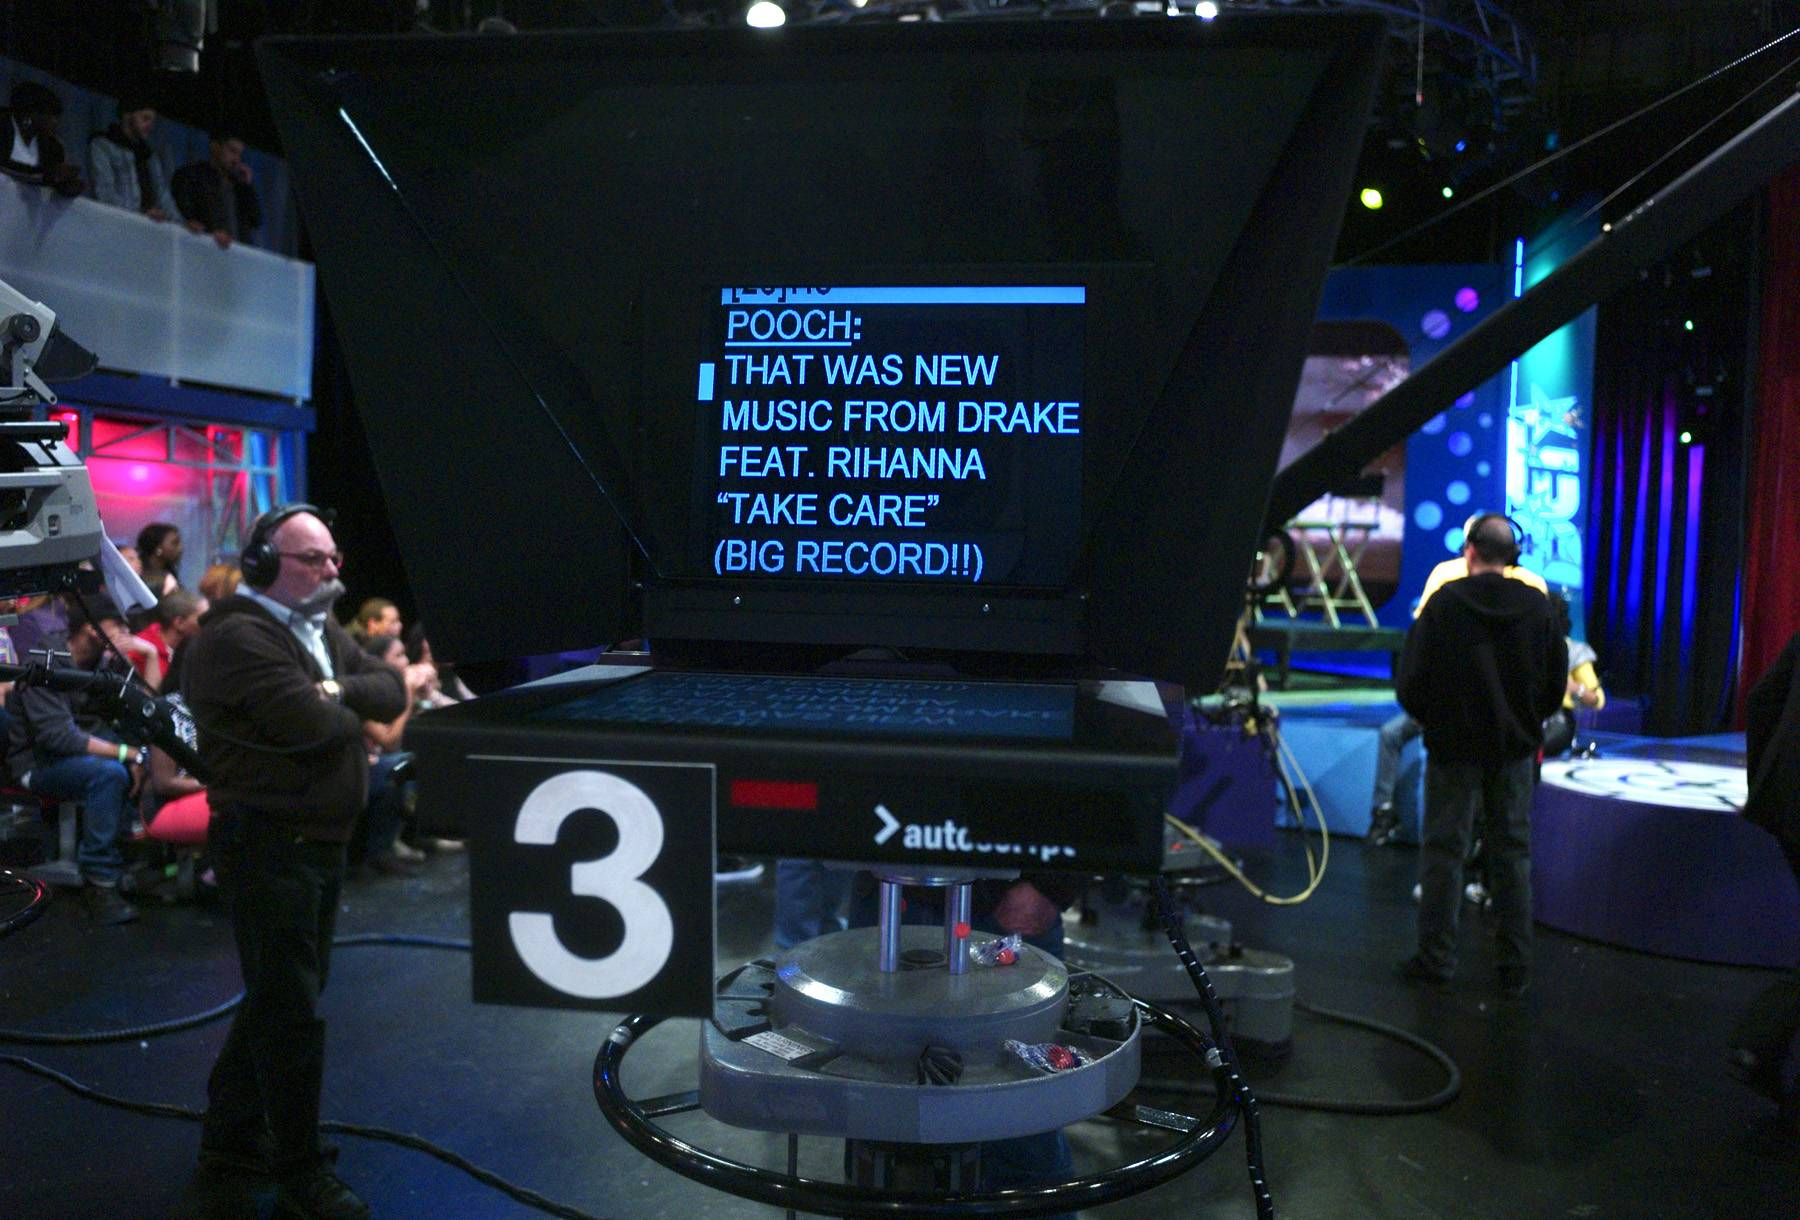 What Are My Lines - Pooch Hall teleprompter at 106 & Park, April 12, 2012. (Photo: John Ricard / BET)